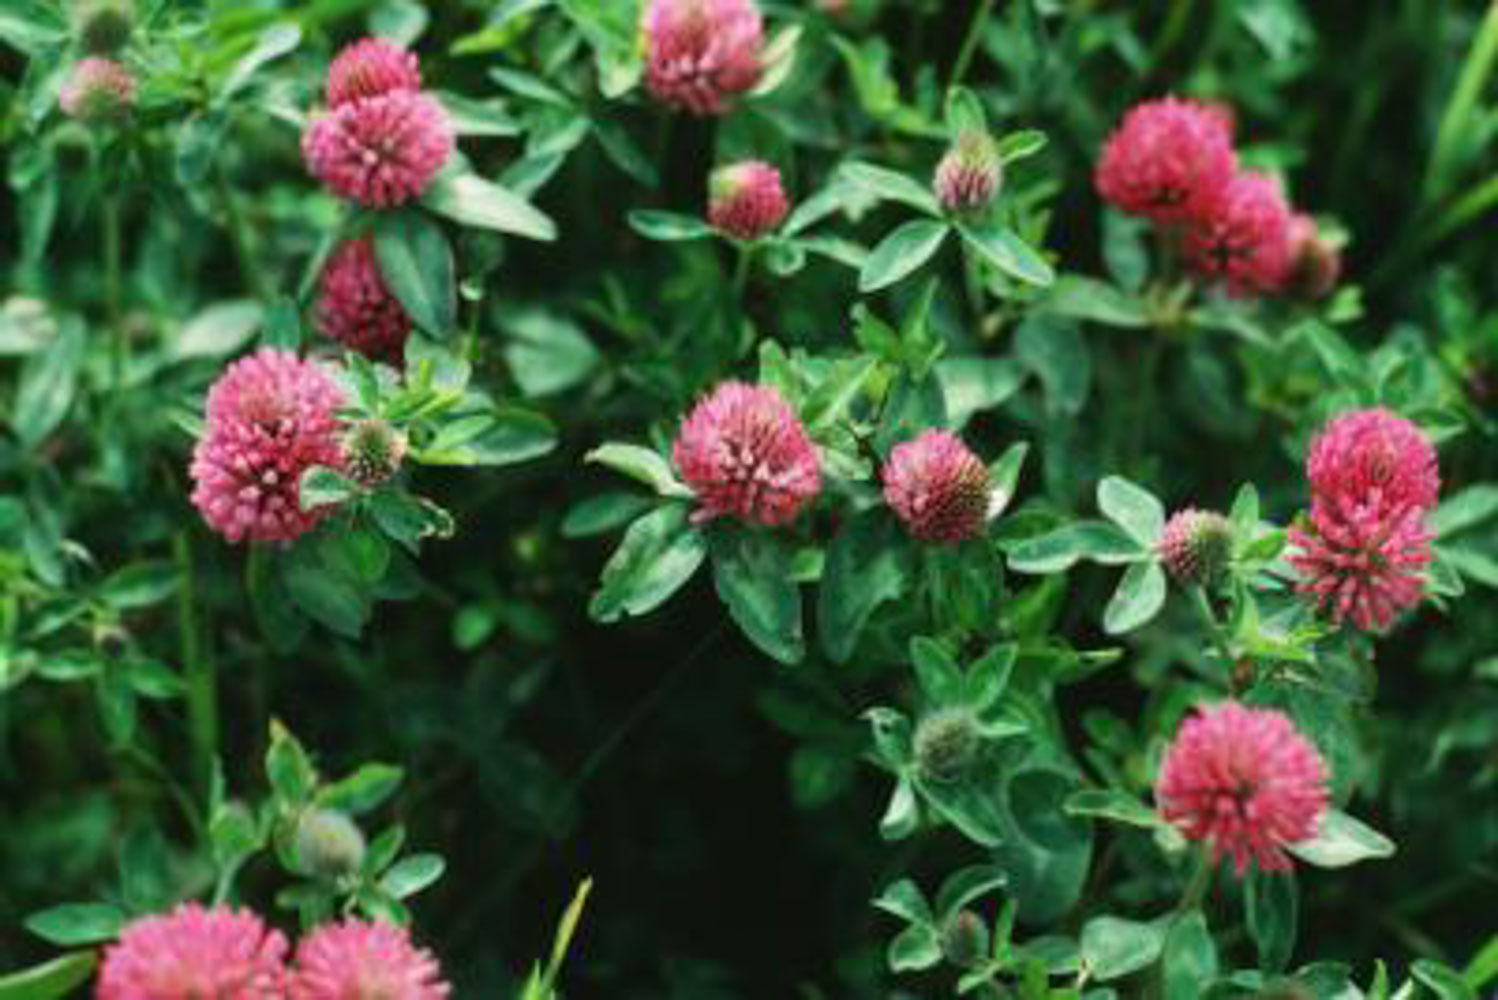 Red Clover Field Oregon 1024x1024 Redclover 20180929 181704 Film1 Add To Wishlist Loading